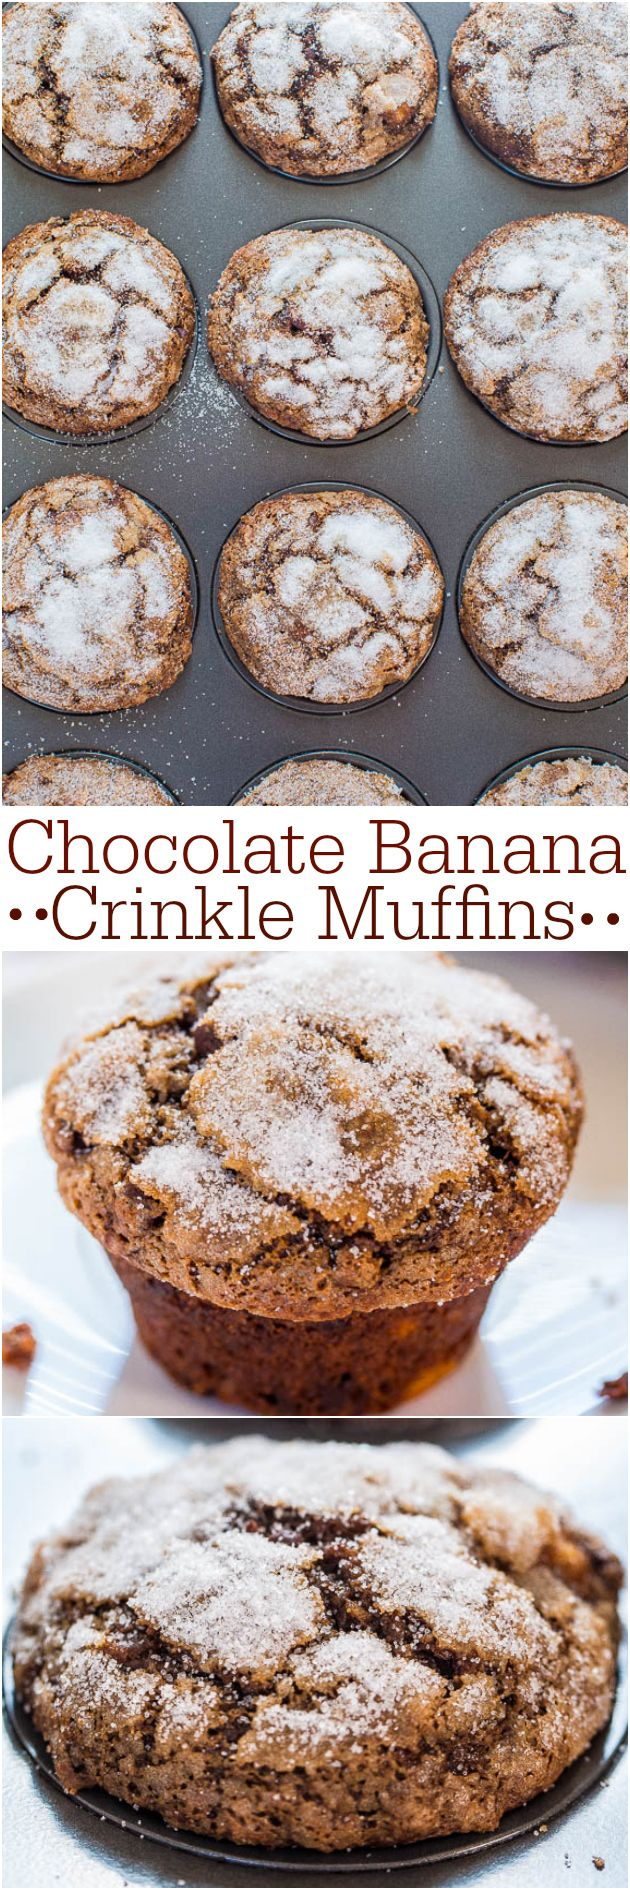 Chocolate Banana Crinkle Muffins - Have ripe bananas to use? Make these easy, no mixer chocolate beauties! Best.muffin.tops.EVER!!!